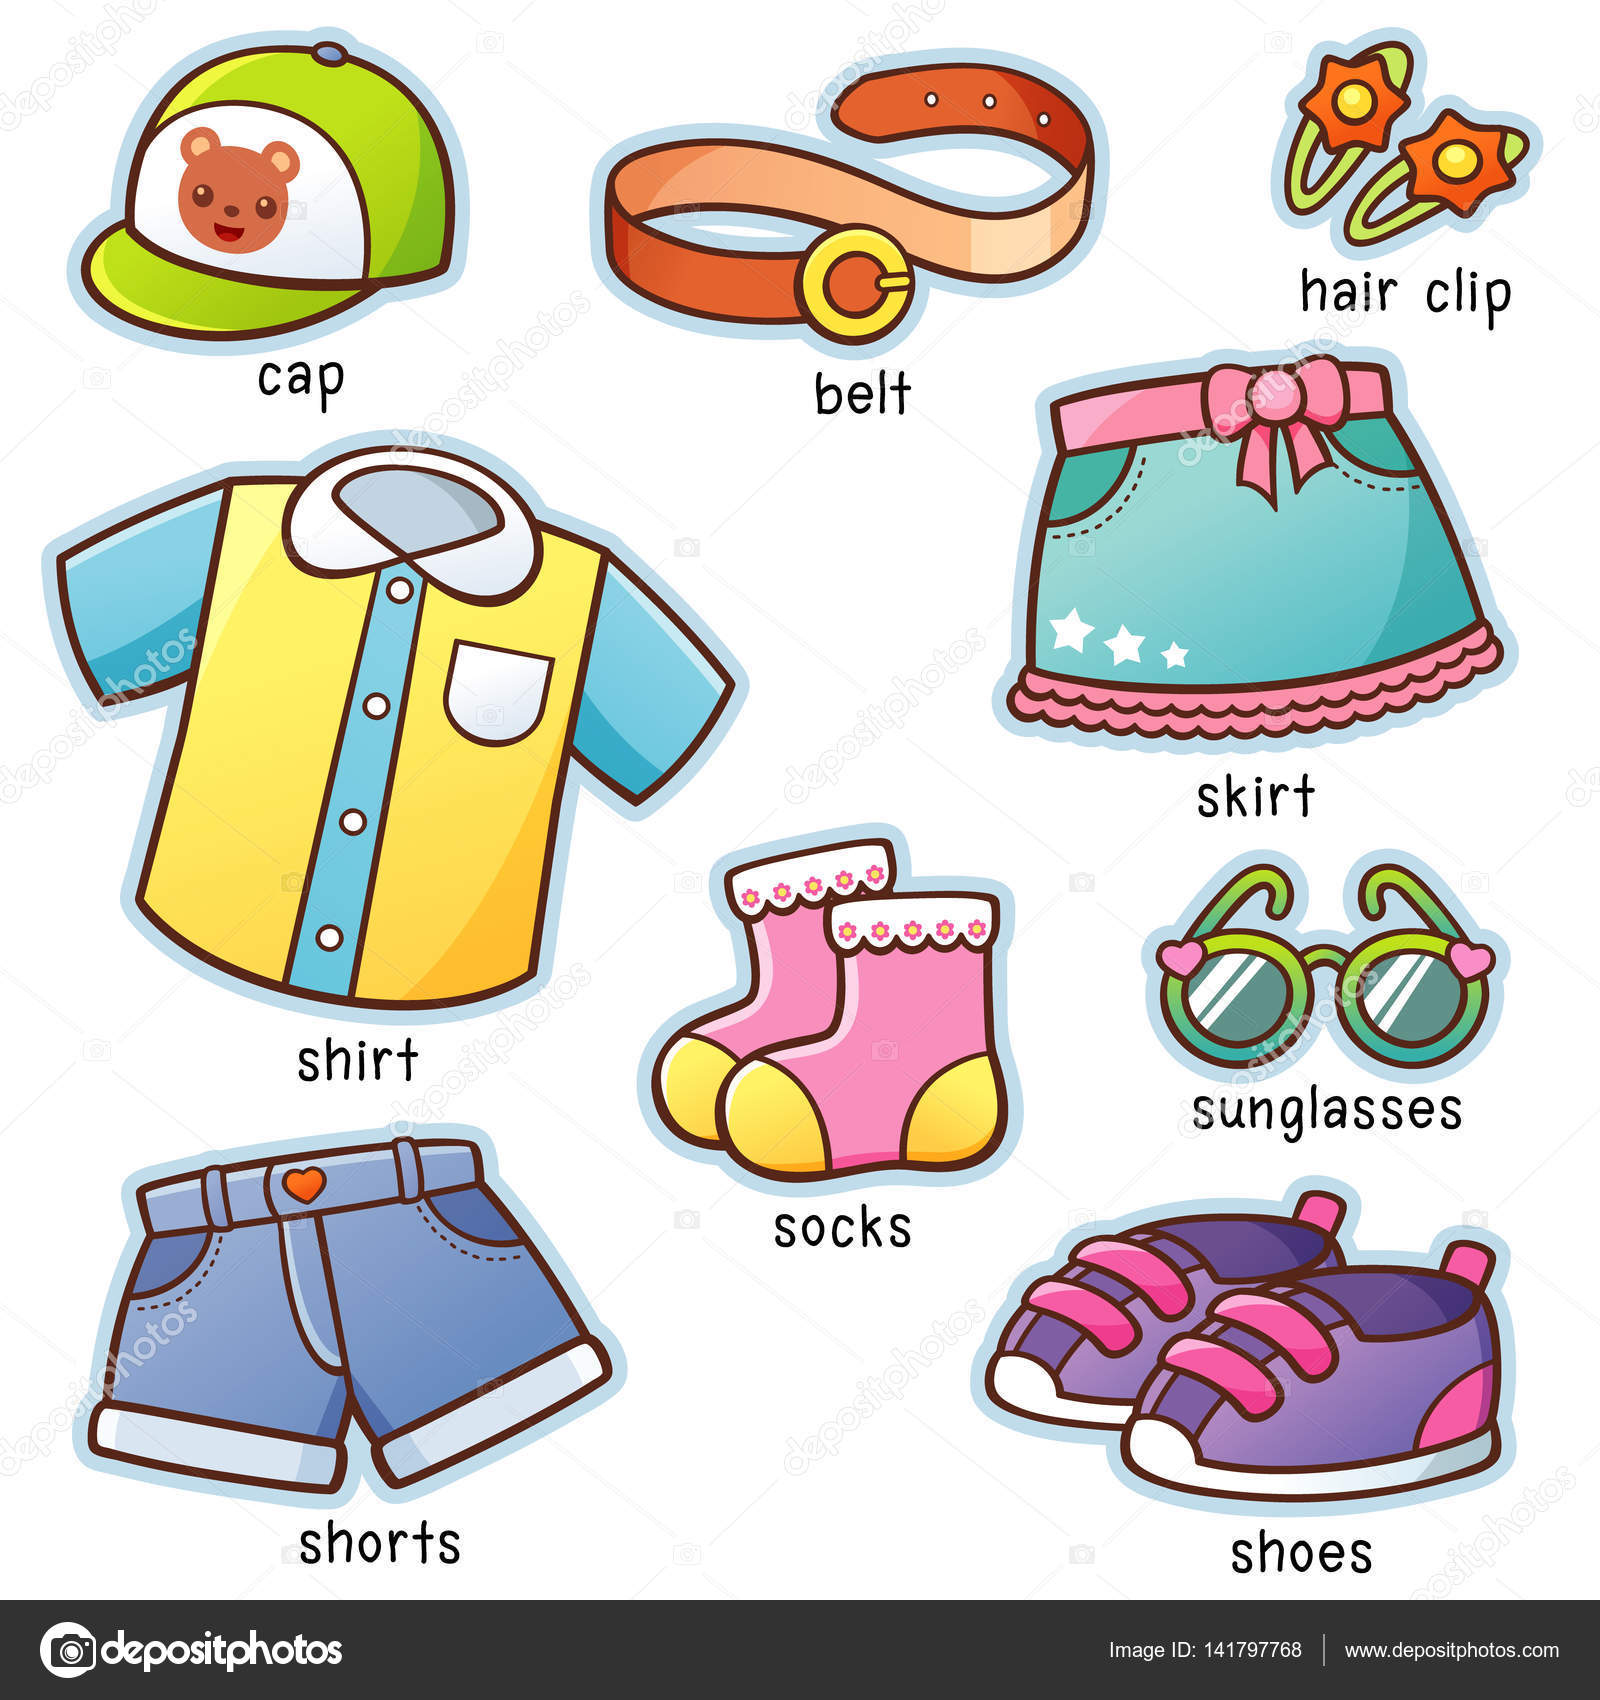 Images Cartoon Clothes